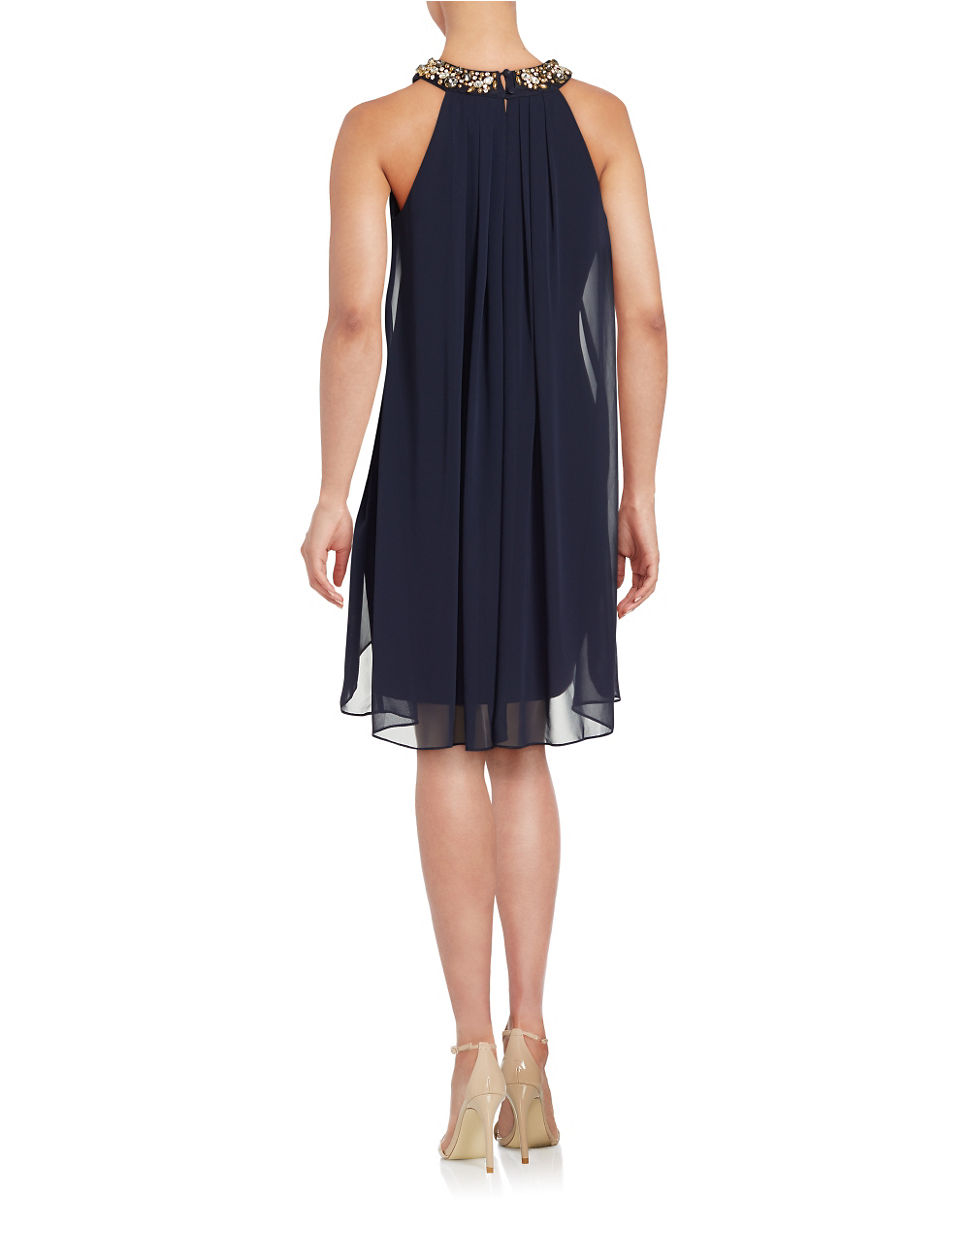 Vince camuto Pleated Overlay Dress in Black